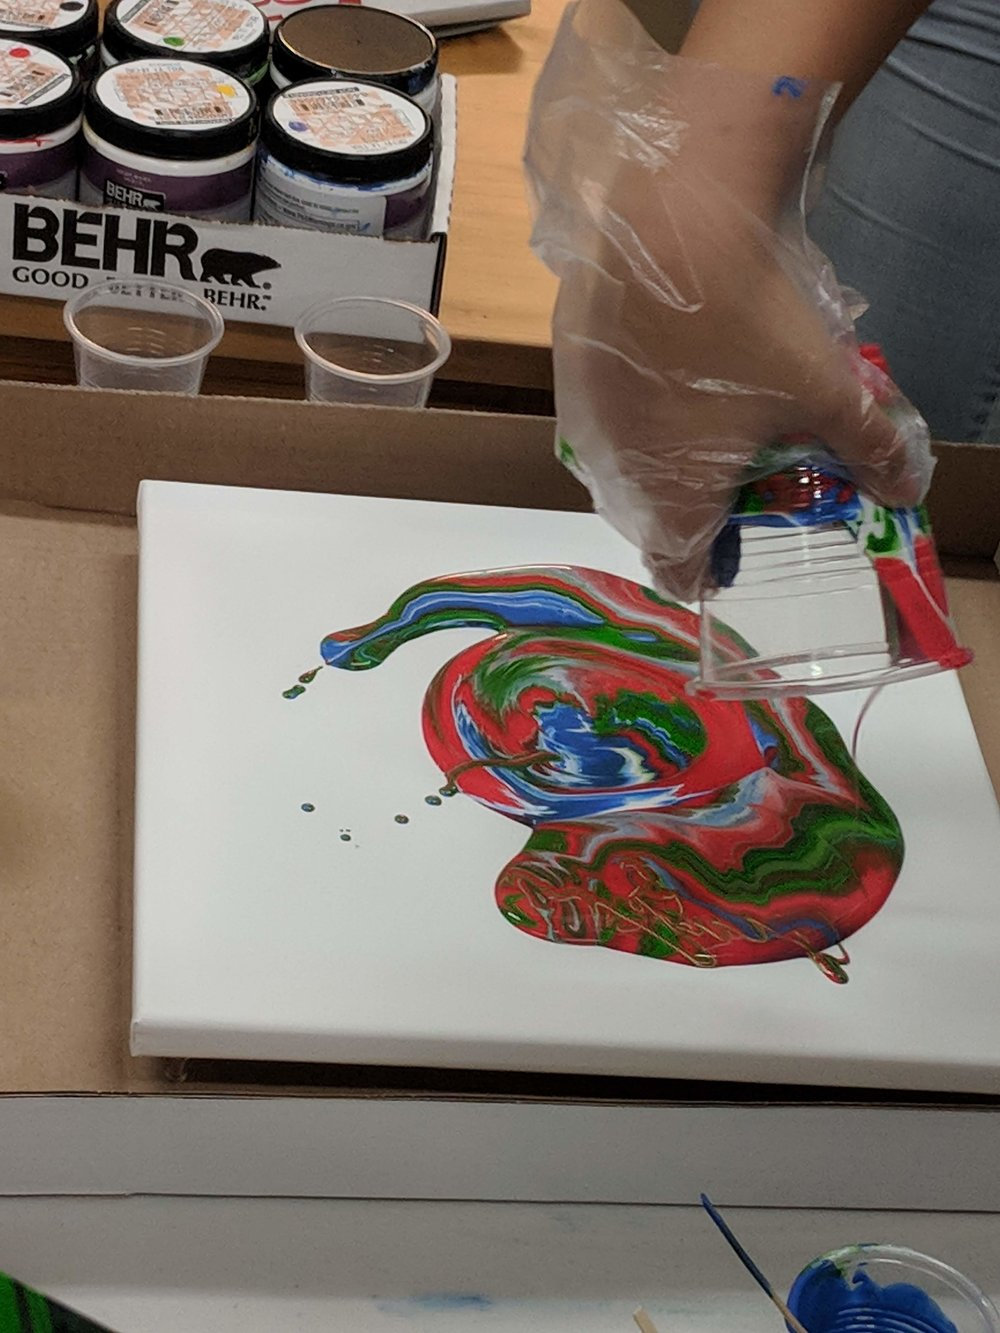 Liquid Flow Painting Workshop, Taught by Elton Glover, Saturday, Dec. 15 (1 PM to 2:30 PM) - The workshop (more like a class) is intended to introduce people to creating liquid flow paintings! By the end of class, participants will walk away with a unique 12